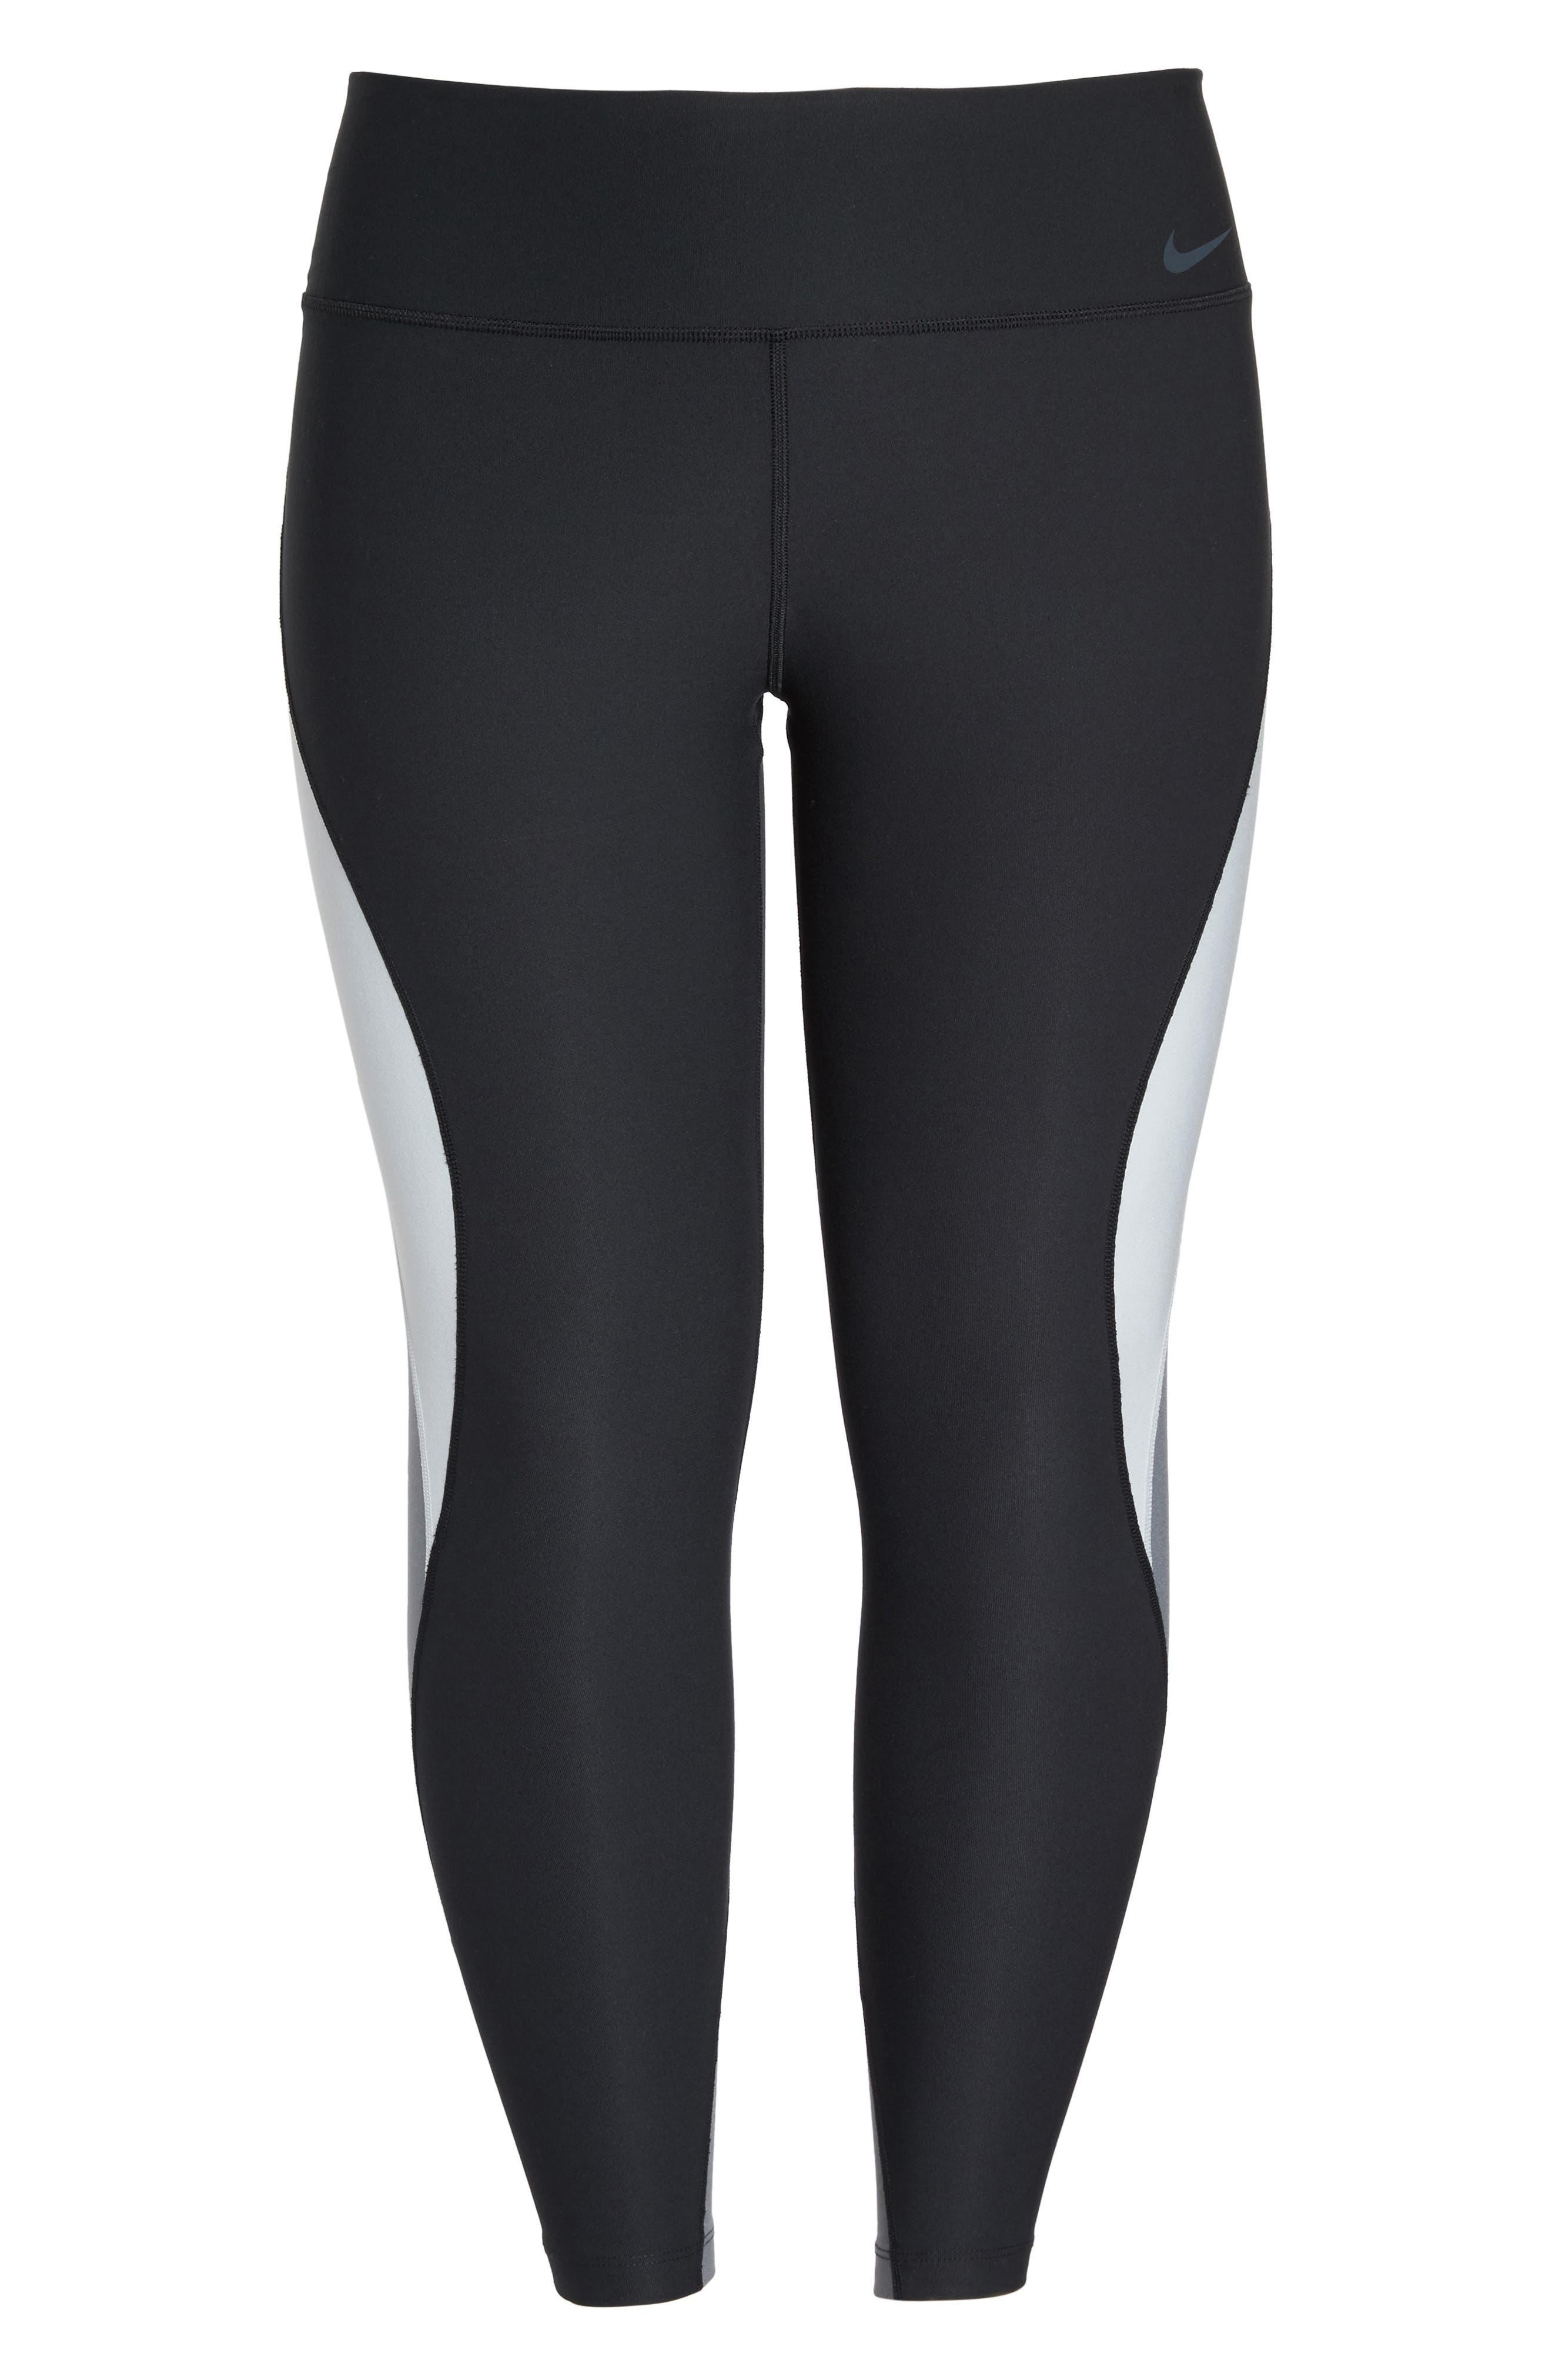 Power Legend Training Tights,                             Alternate thumbnail 6, color,                             010